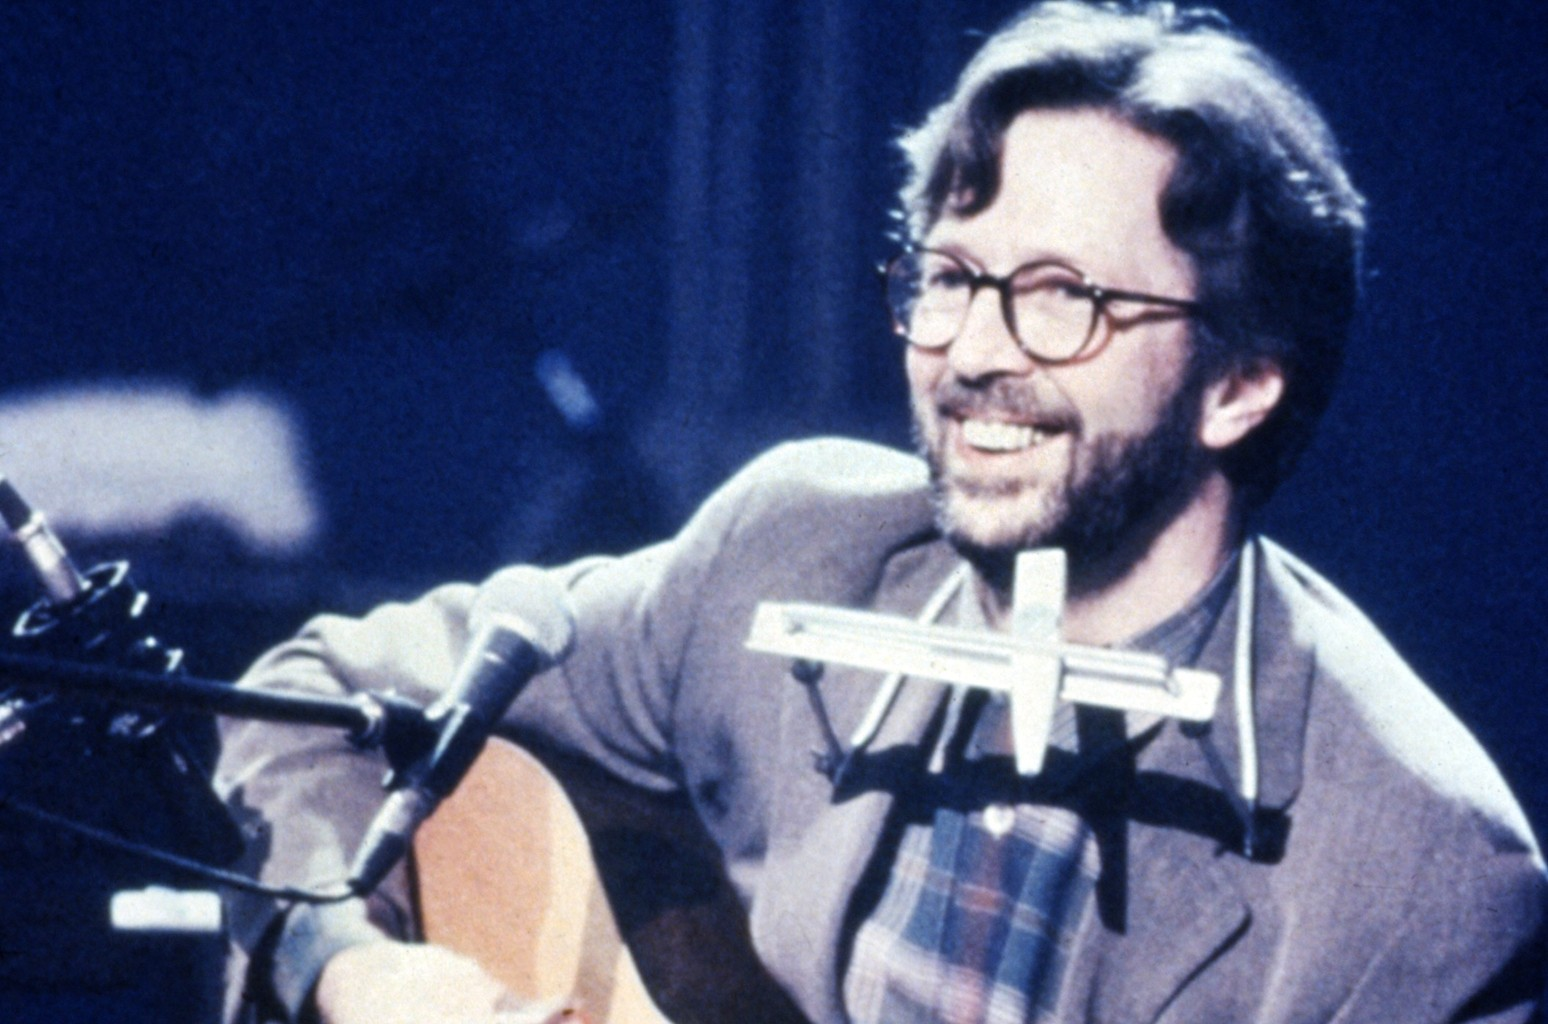 Eric Clapton during MTV Unplugged